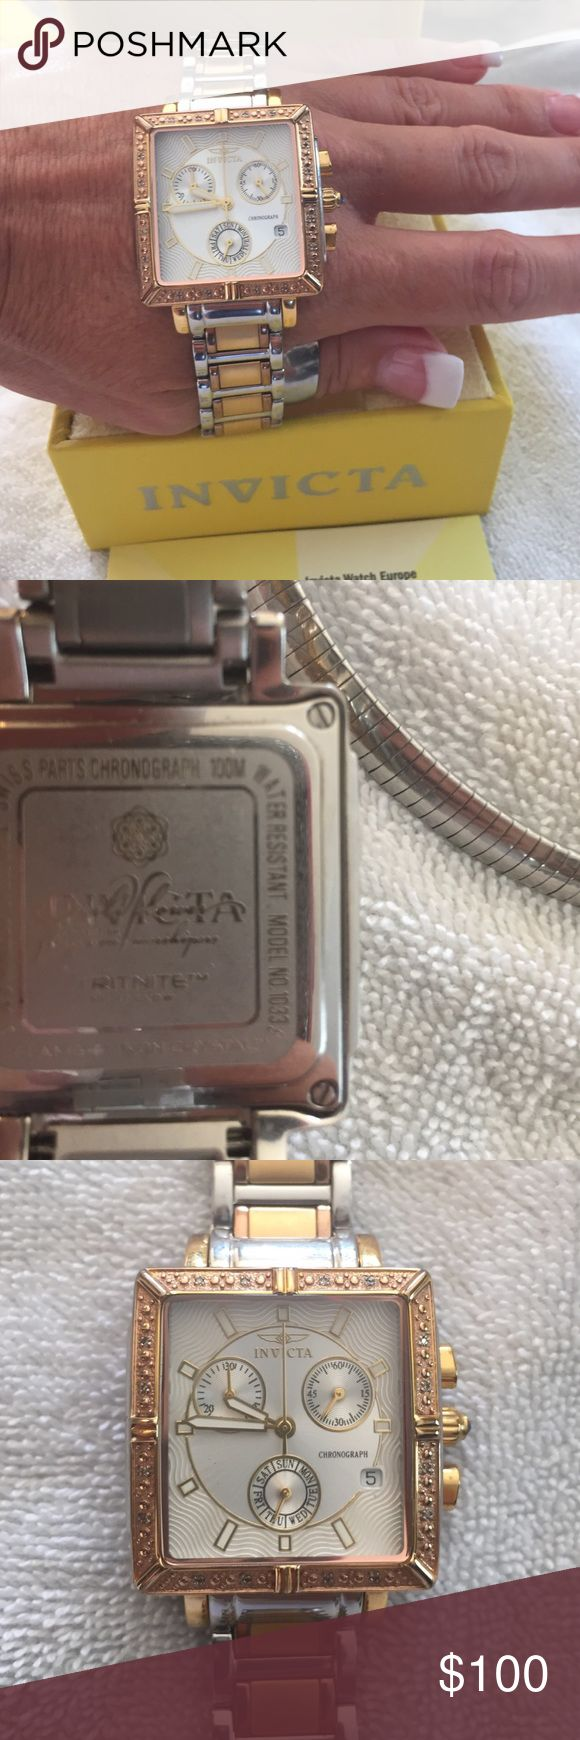 WOMENS INVICTAwatch. New. OBO Beautiful gold& stainless steel watch. Worn once. I have Too many watches. Perfect  Invicta Jewelry  www.womenswatchhouse.com